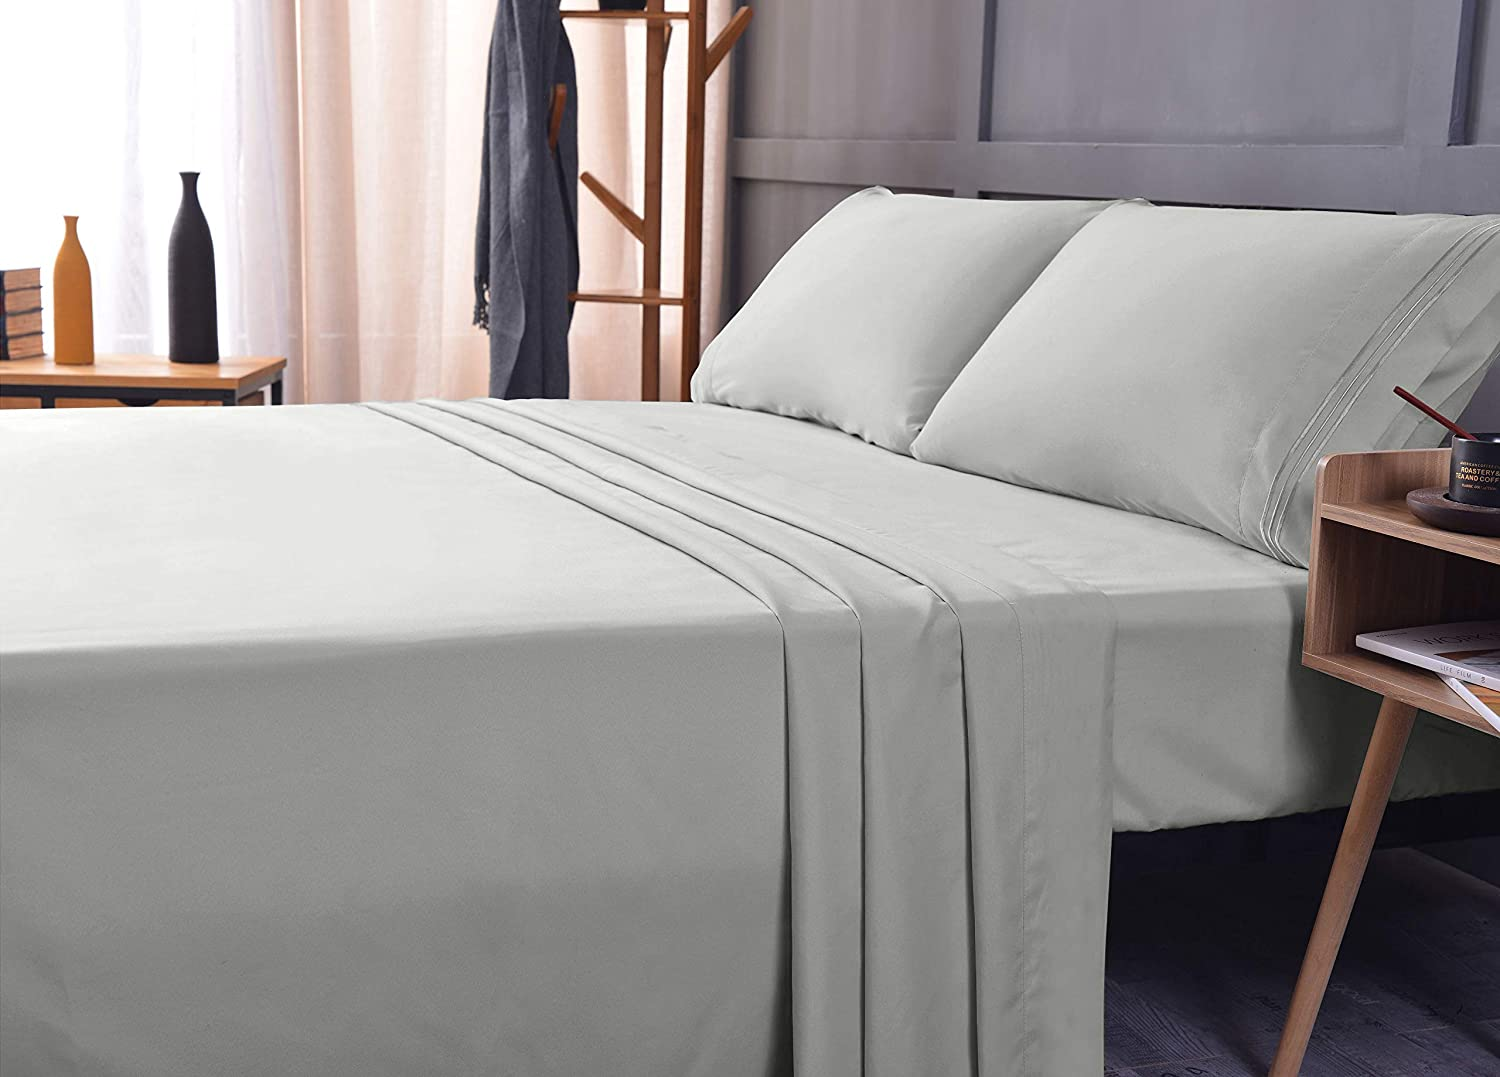 Bamboo Ultra Soft Sheet Set – Deep Pocket, Machine Washable, Wrinkle and Shrink Resistant, Hypoallergenic, Cooling, Fade Resistant Bedding Sheet – 4 Piece Set (Queen, Light Gray)